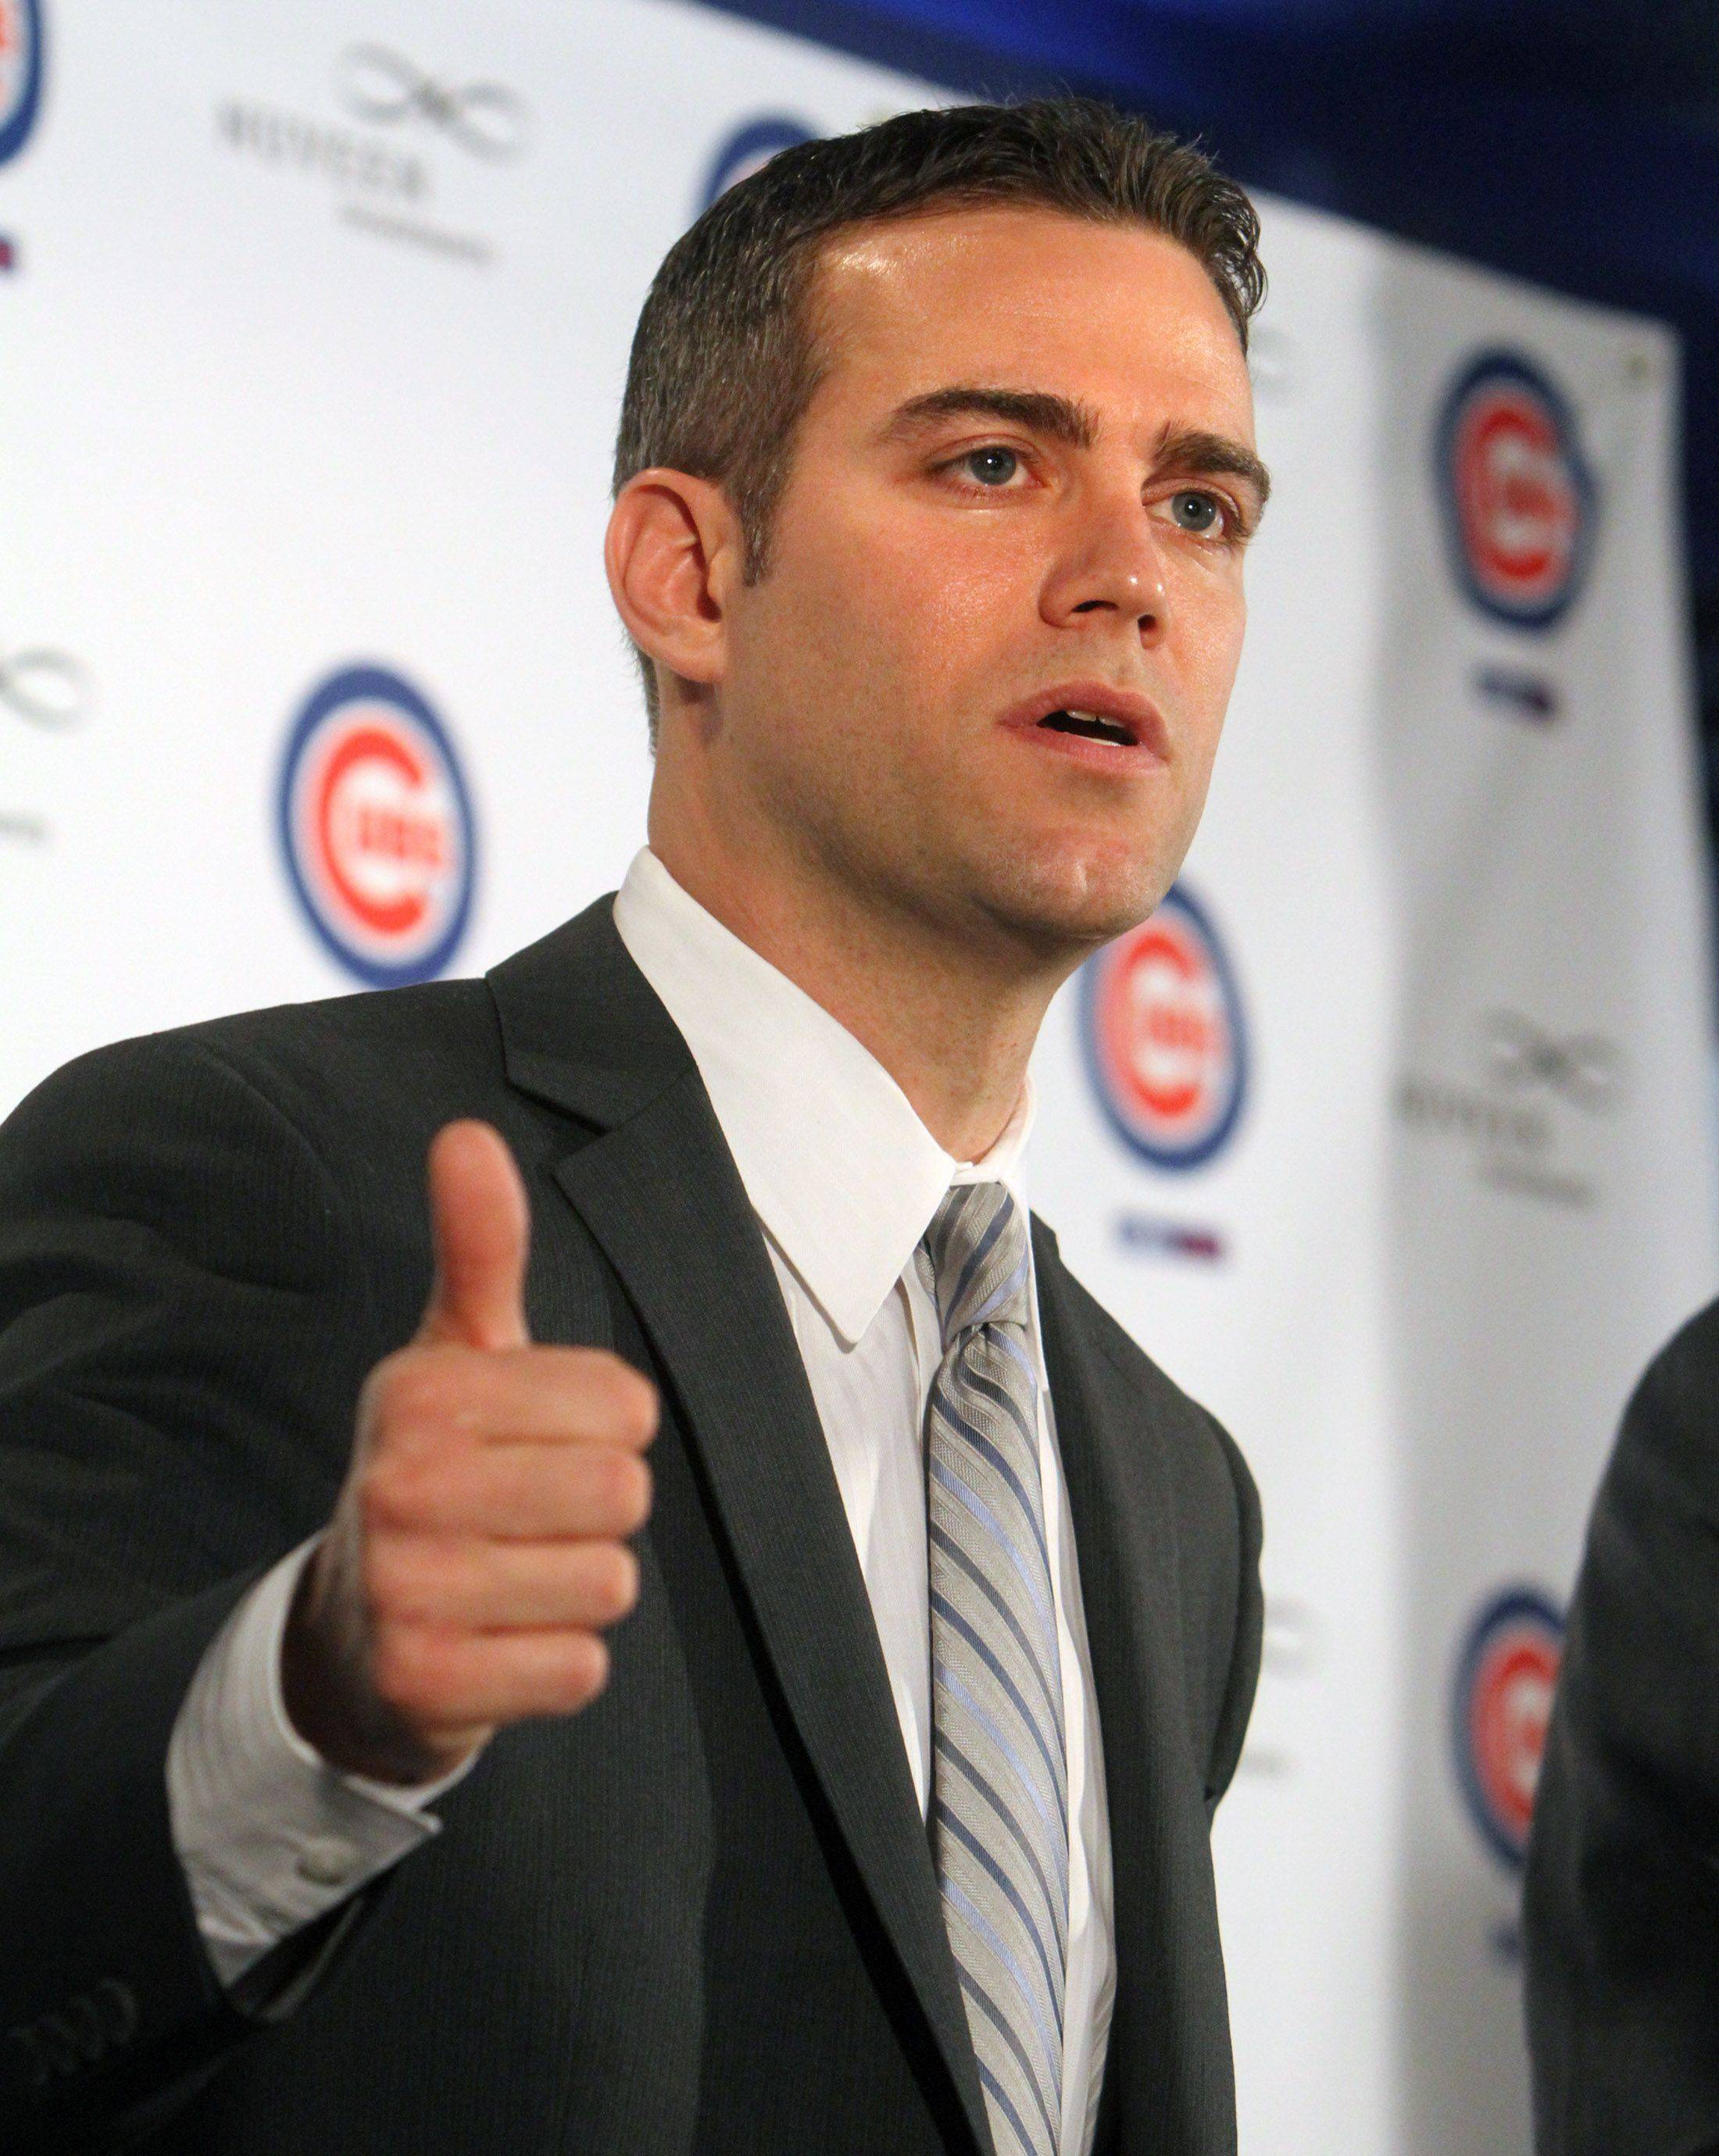 Theo Epstein addressed the media after being introduced Tuesday at Wrigley Field.